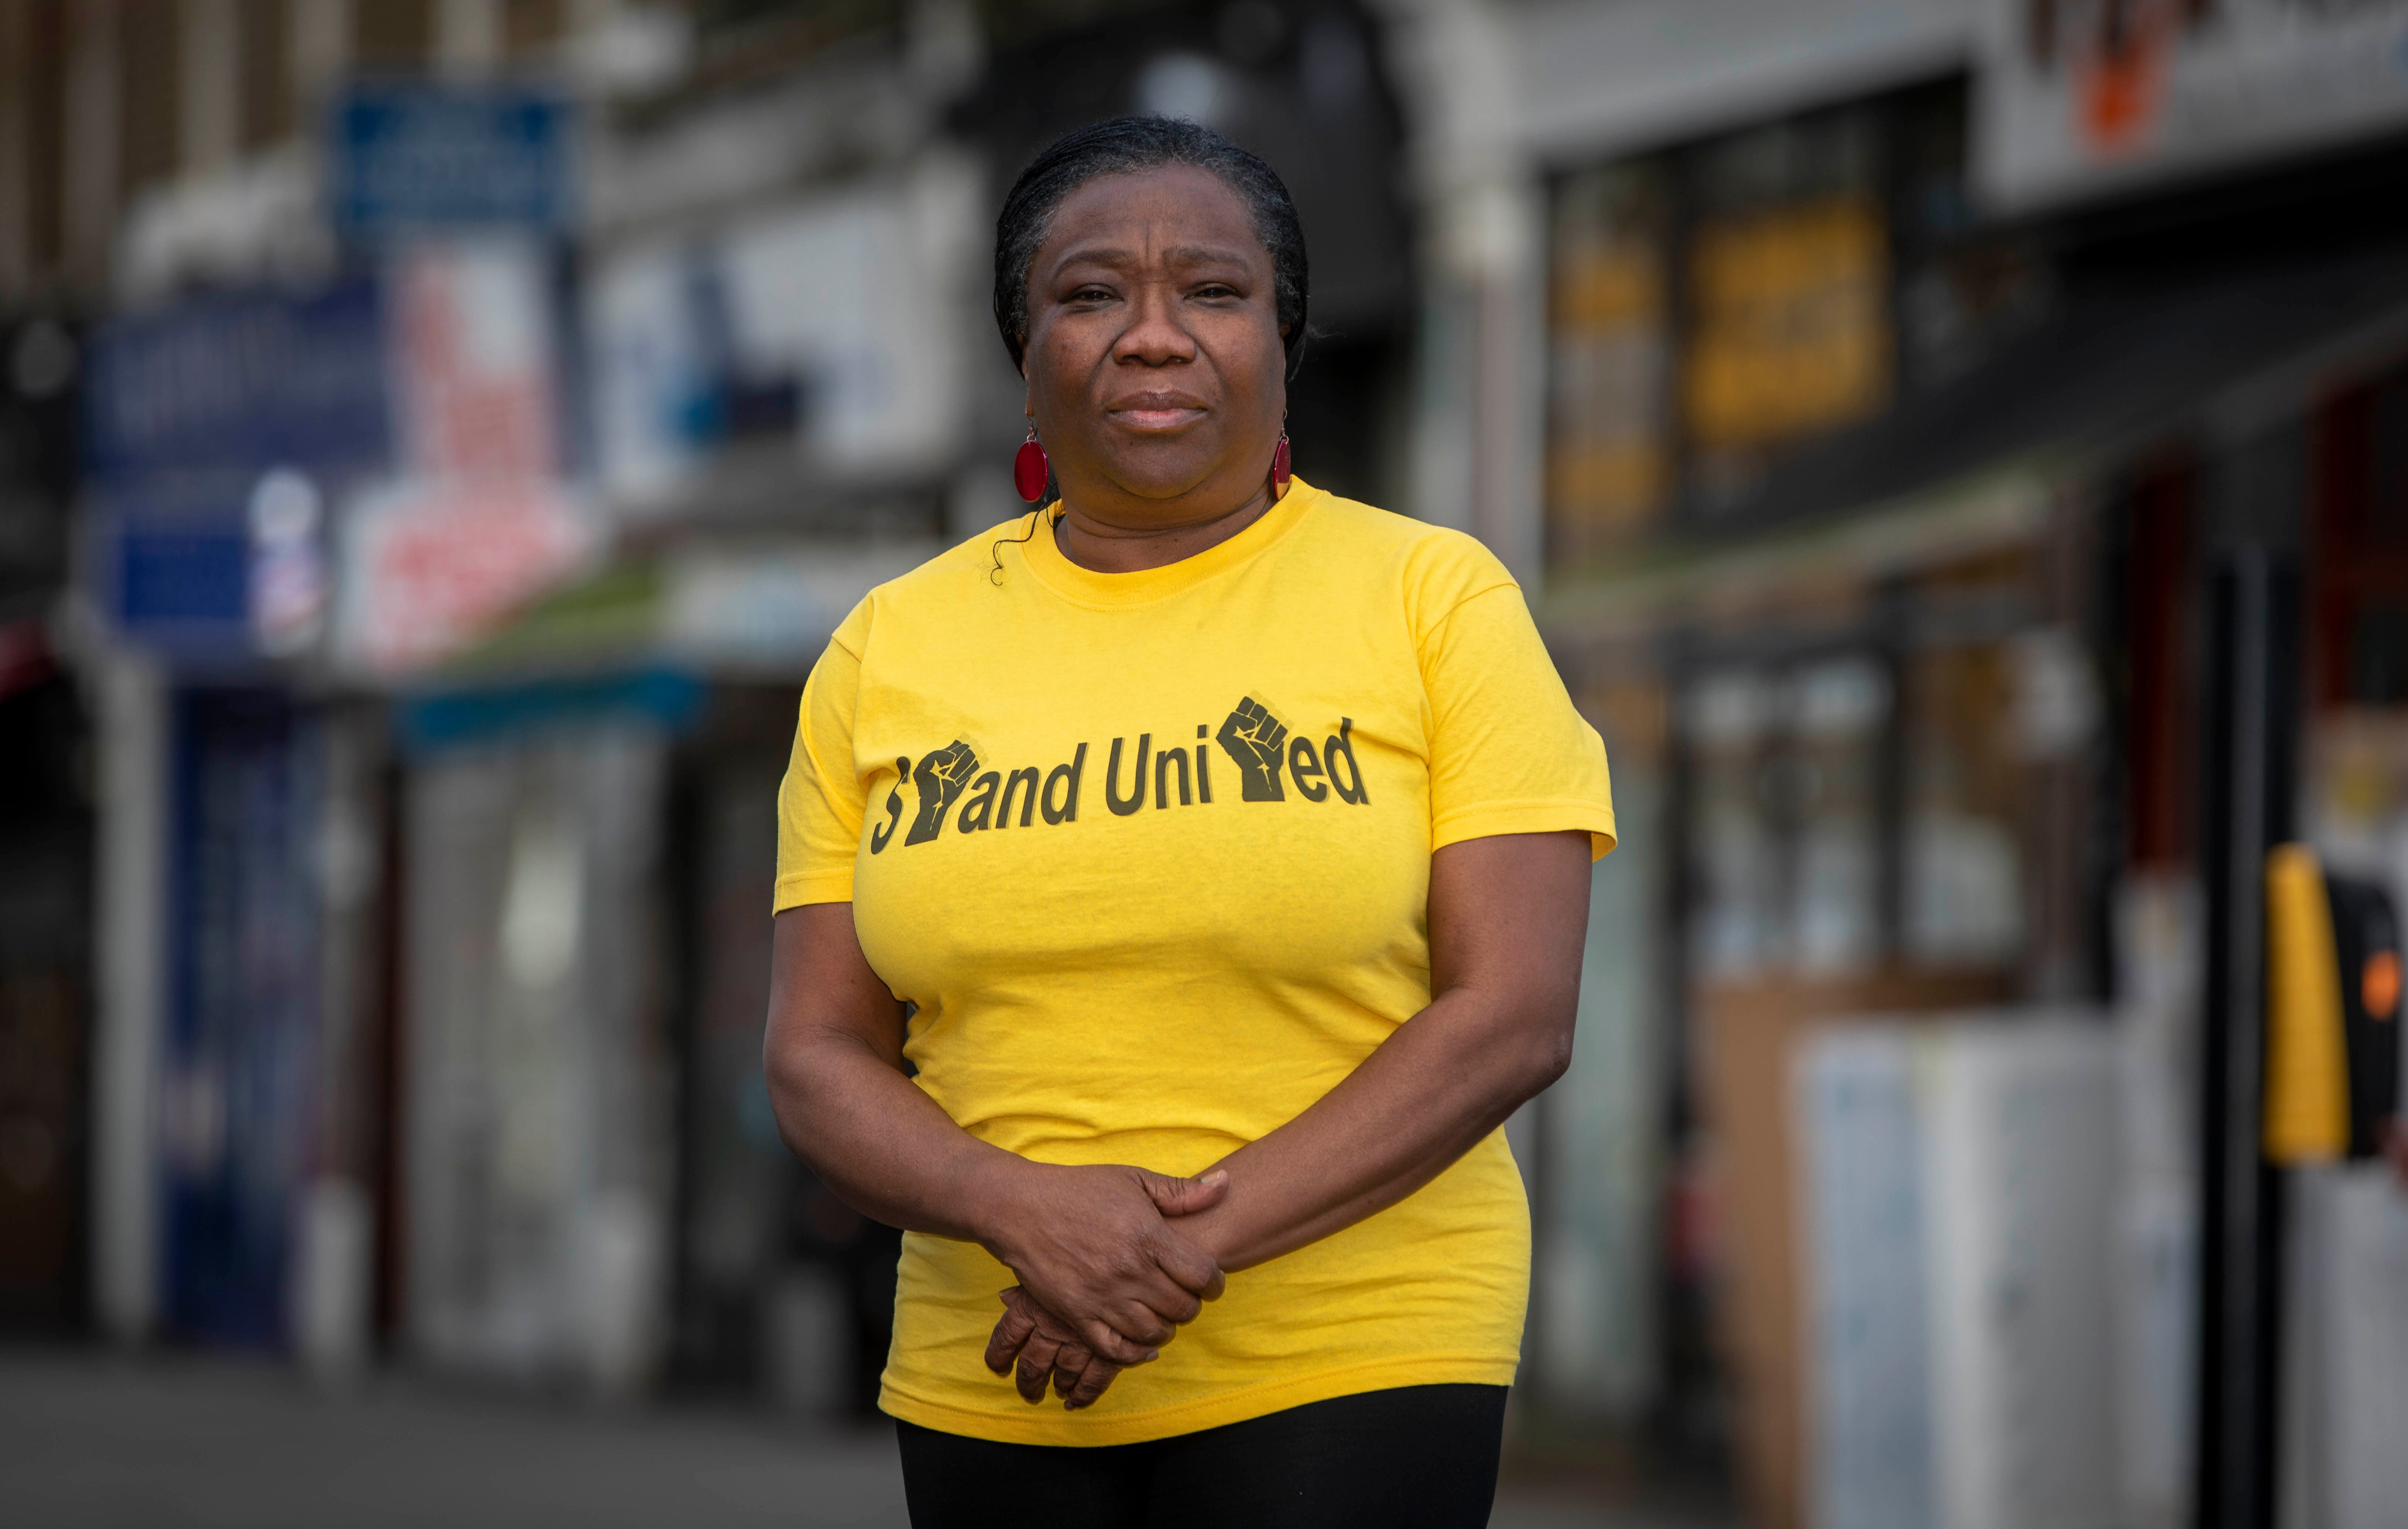 Lara's aunt, Mercinth Anderson, said her friend moved her 12-year-old son out of Stoke Newington to Jamaica over fears of gang violence